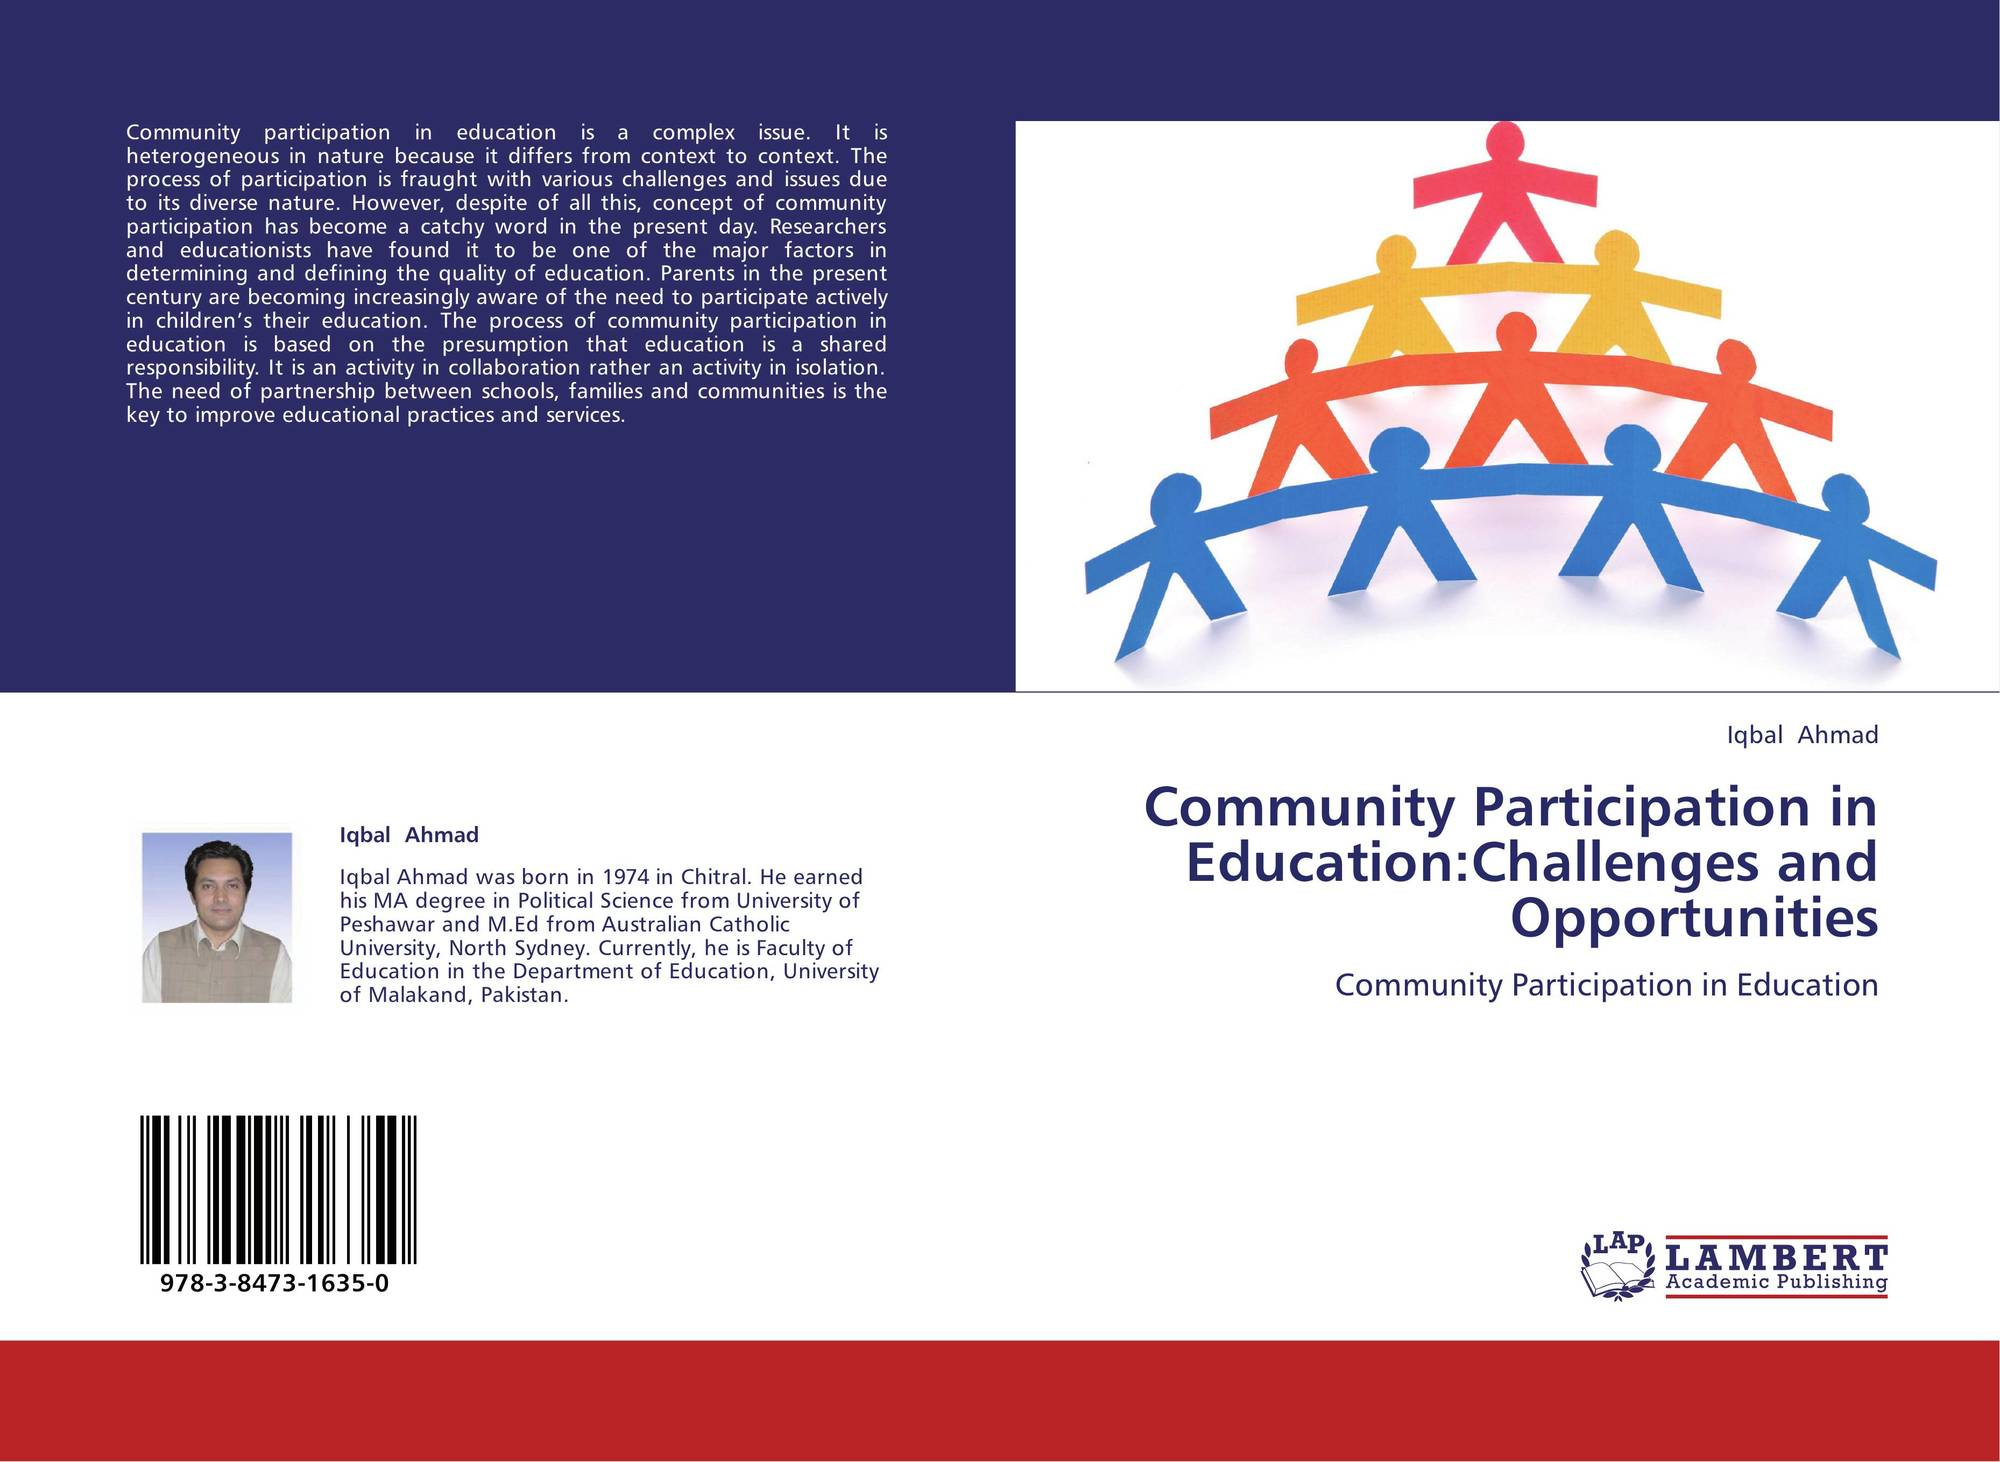 thesis on community participation in education A research thesis report submitted in partial fulfillment of the requirements for the   and find out whether parents' participation in educational activities at school   to provide resources and services for families, students, and the community.